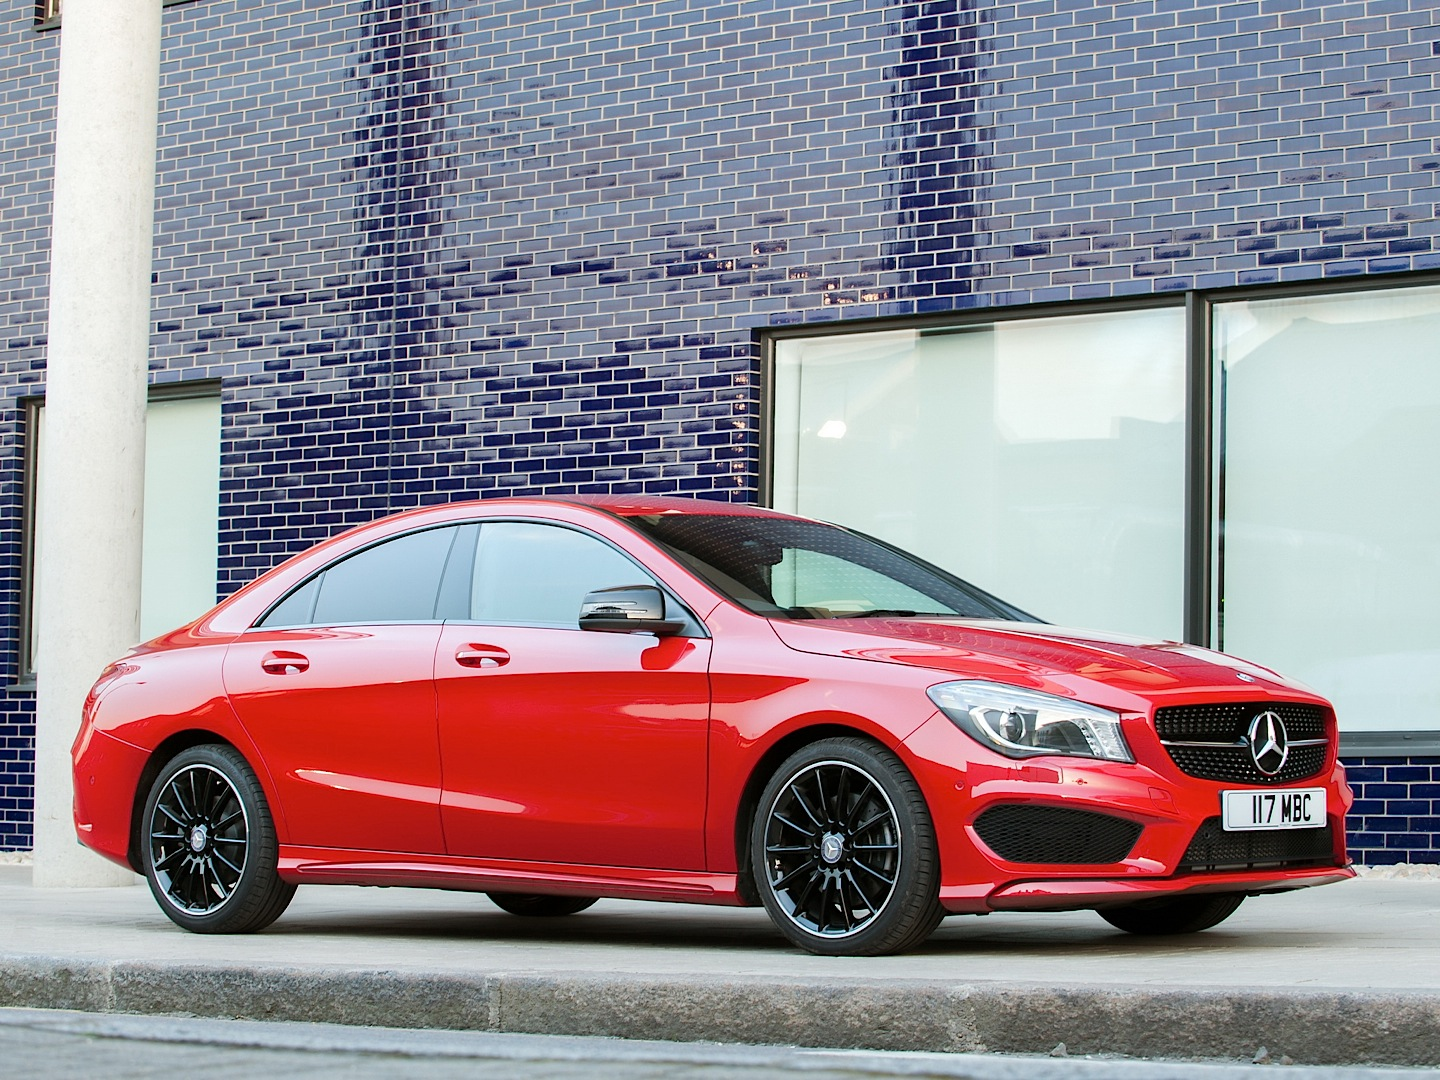 mercedes benz cla 220 cdi gets reviewed by car autoevolution. Black Bedroom Furniture Sets. Home Design Ideas